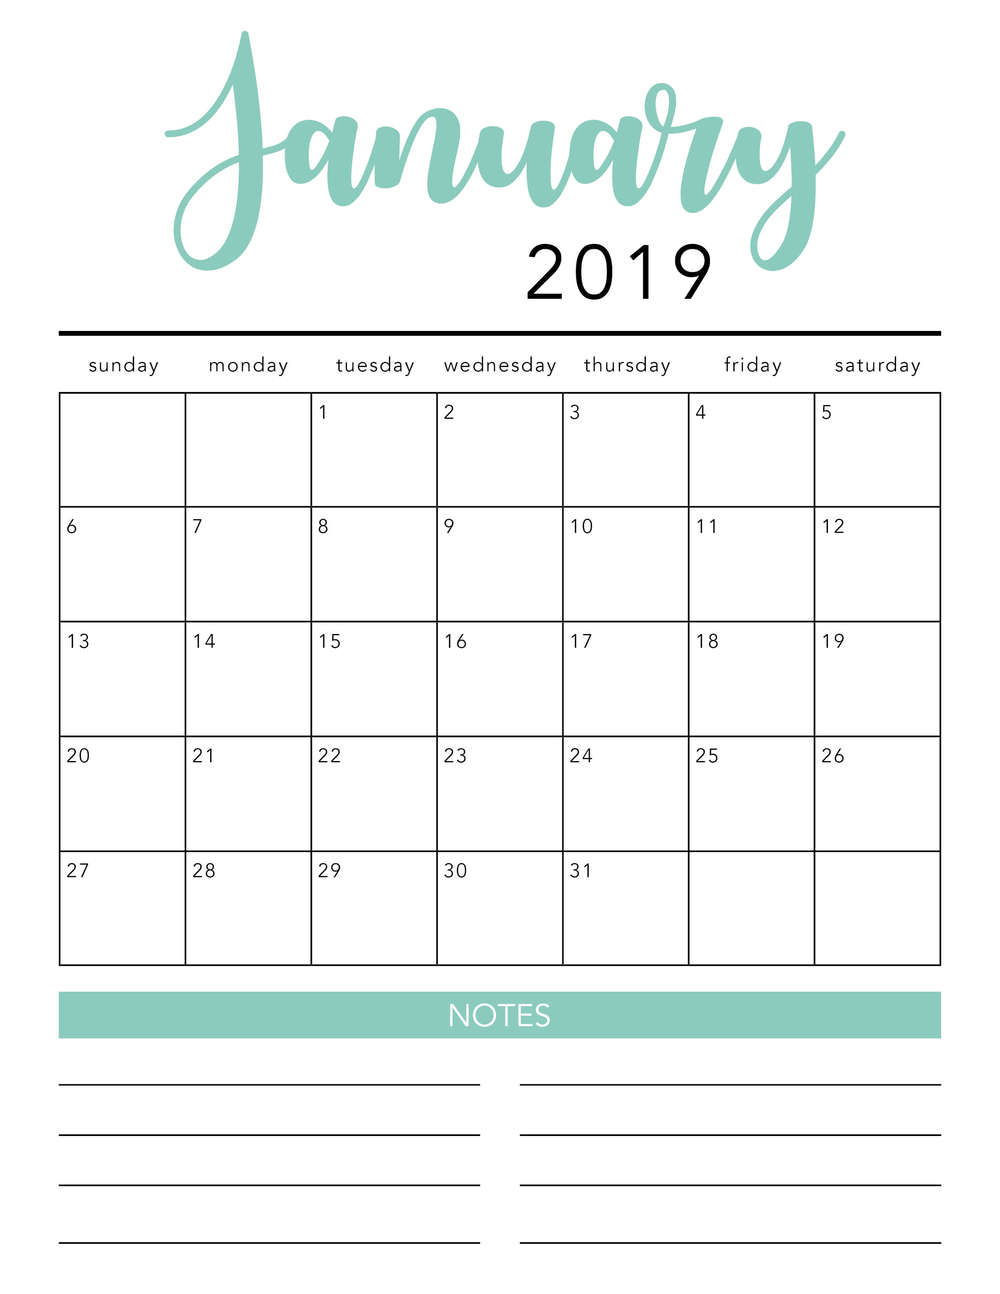 Free 2019 Printable Calendar Template (2 Colors!) - I Heart Naptime within Free Downloadable Monthly Calendar Templates